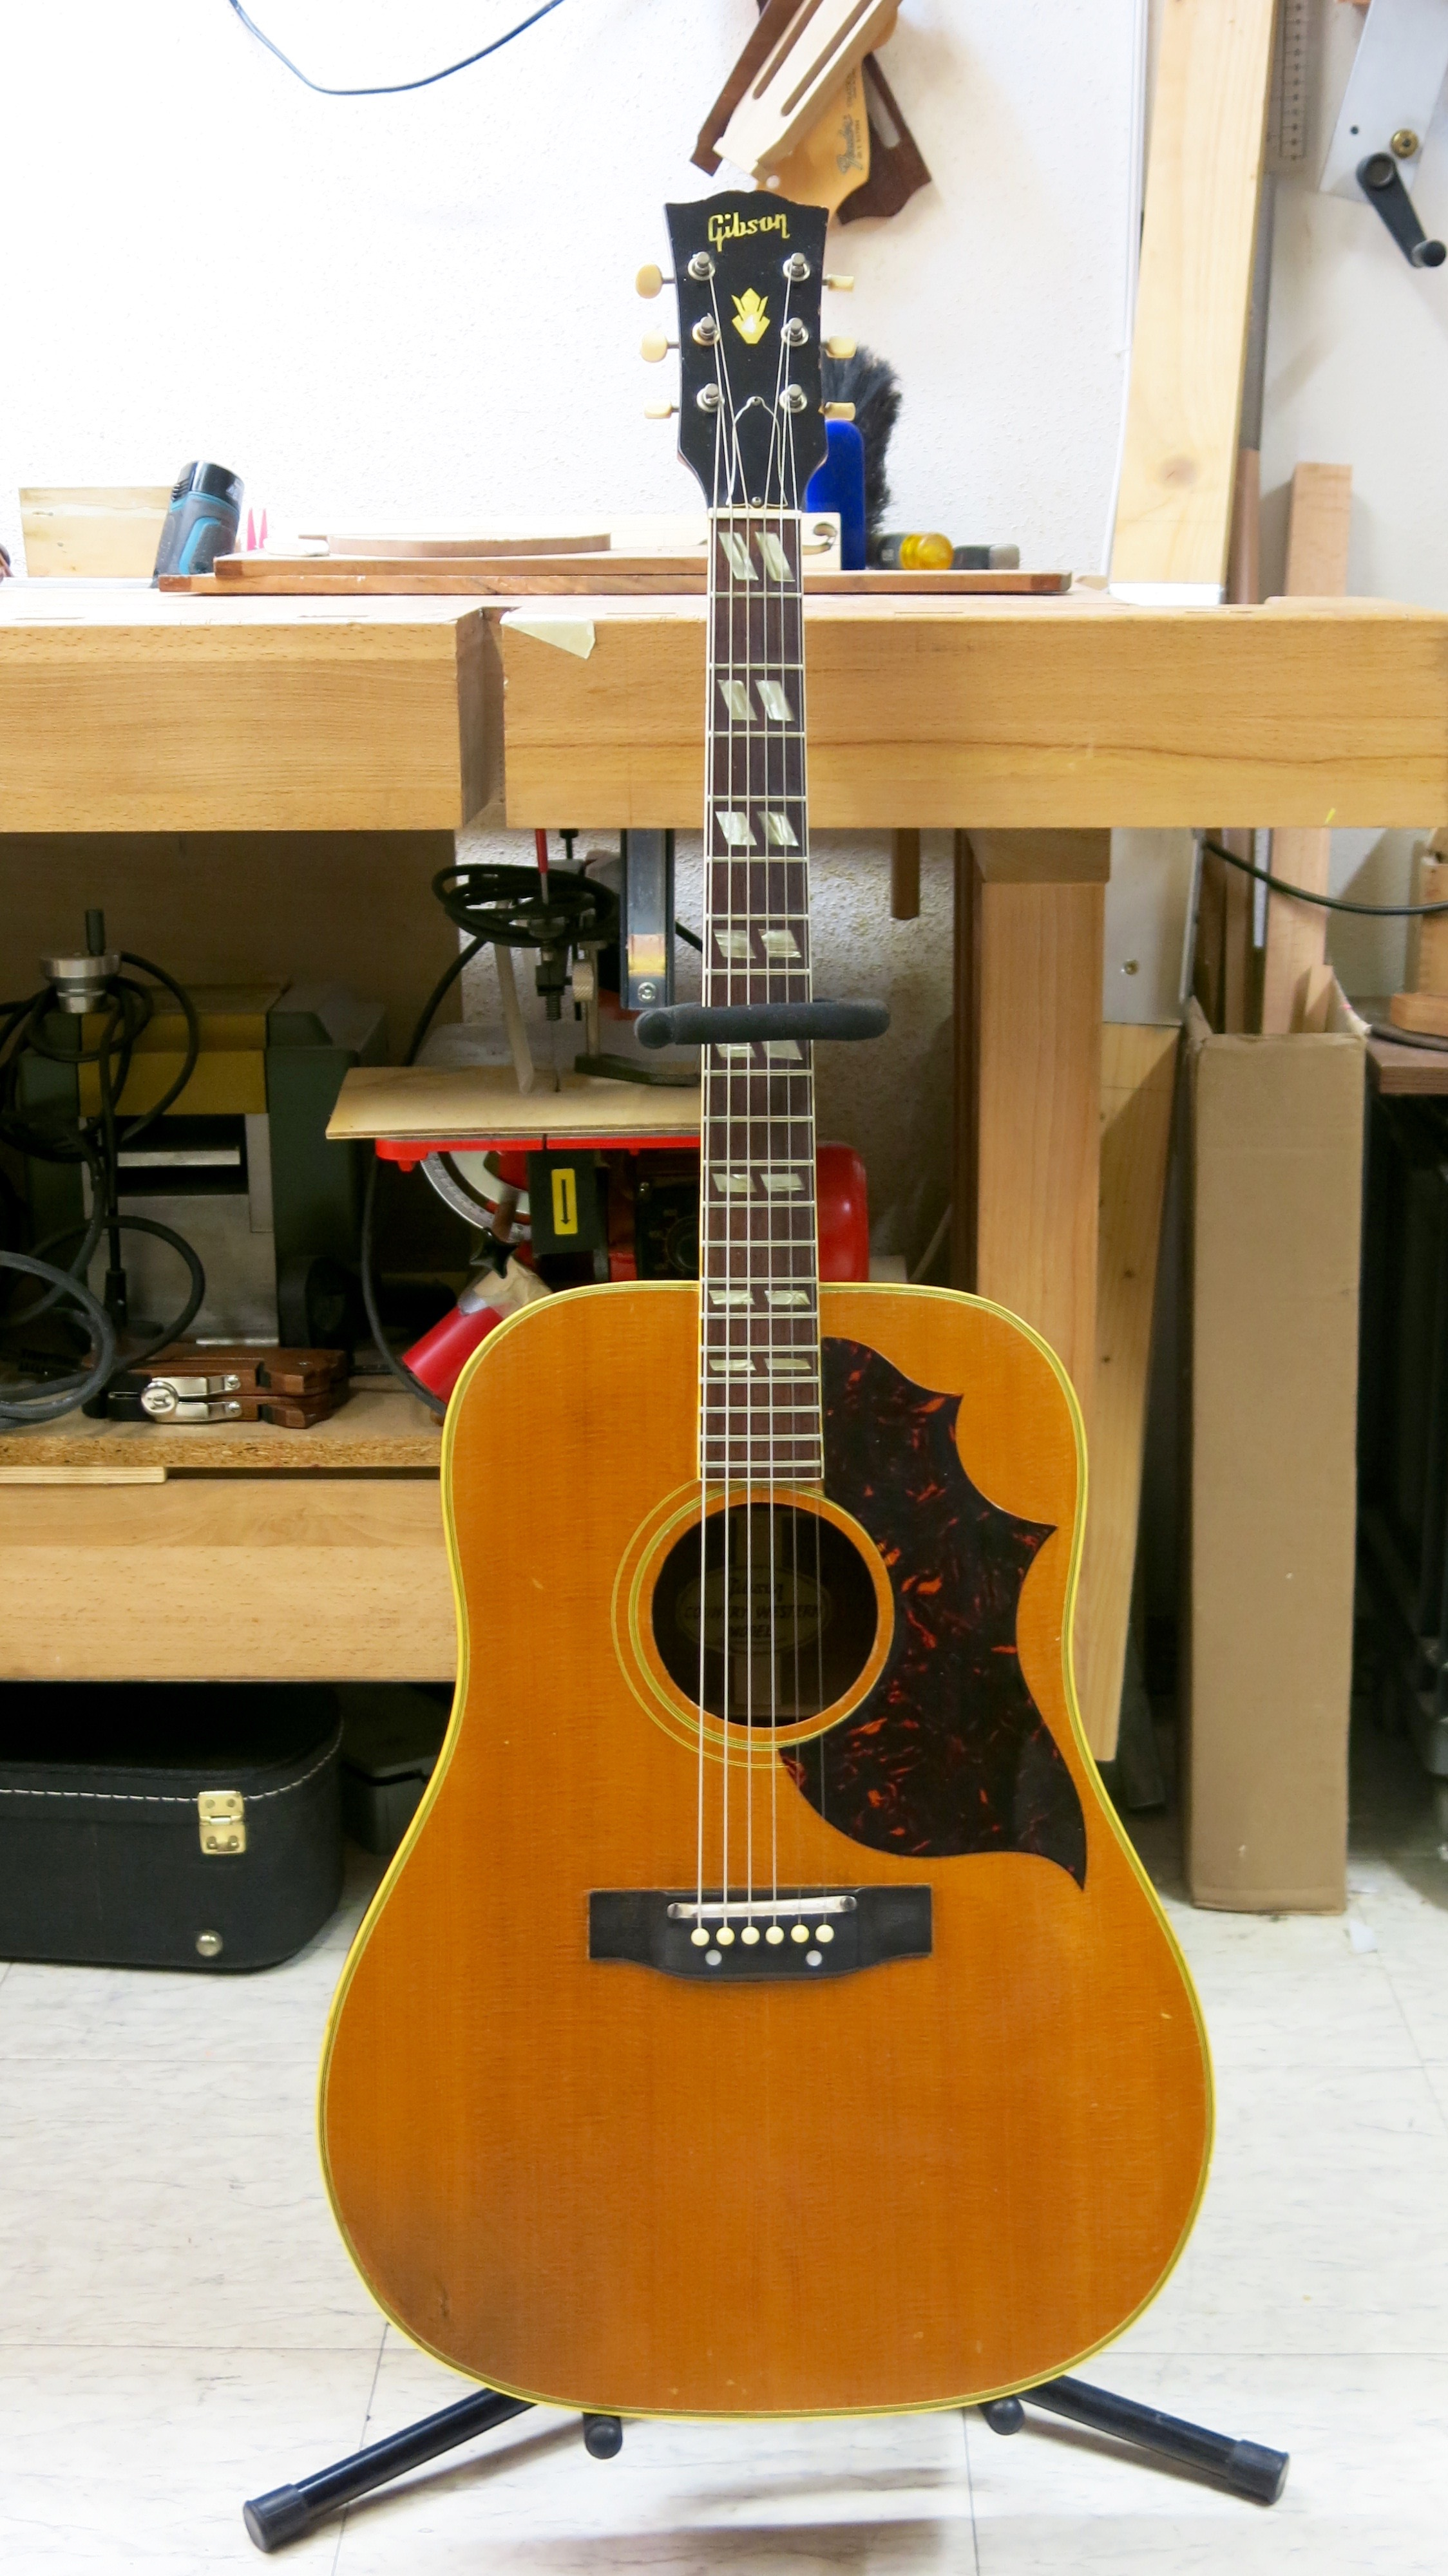 Gibson 1963 Country western